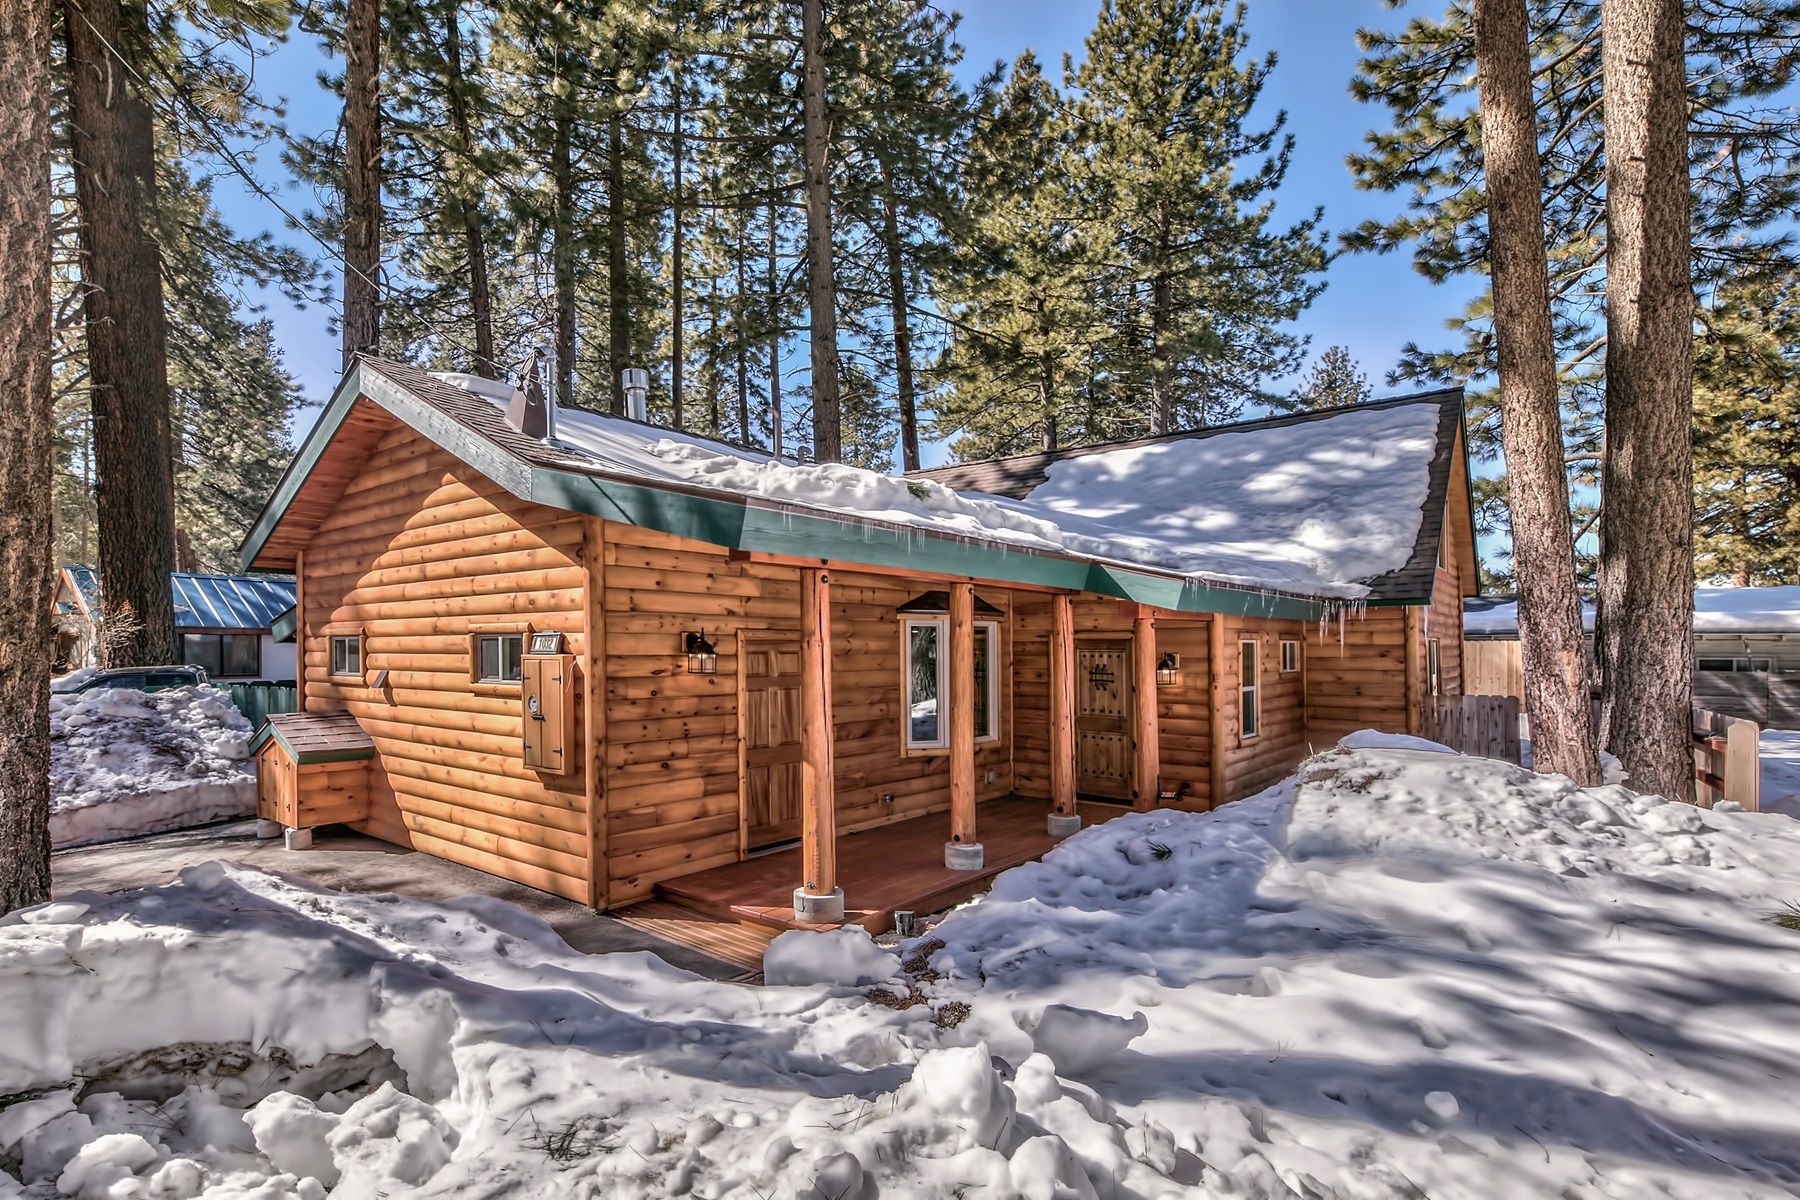 Single Family Home for Active at 1032 Ham Lane, South Lake Tahoe, CA 96150 1032 Ham Lane South Lake Tahoe, California 96150 United States